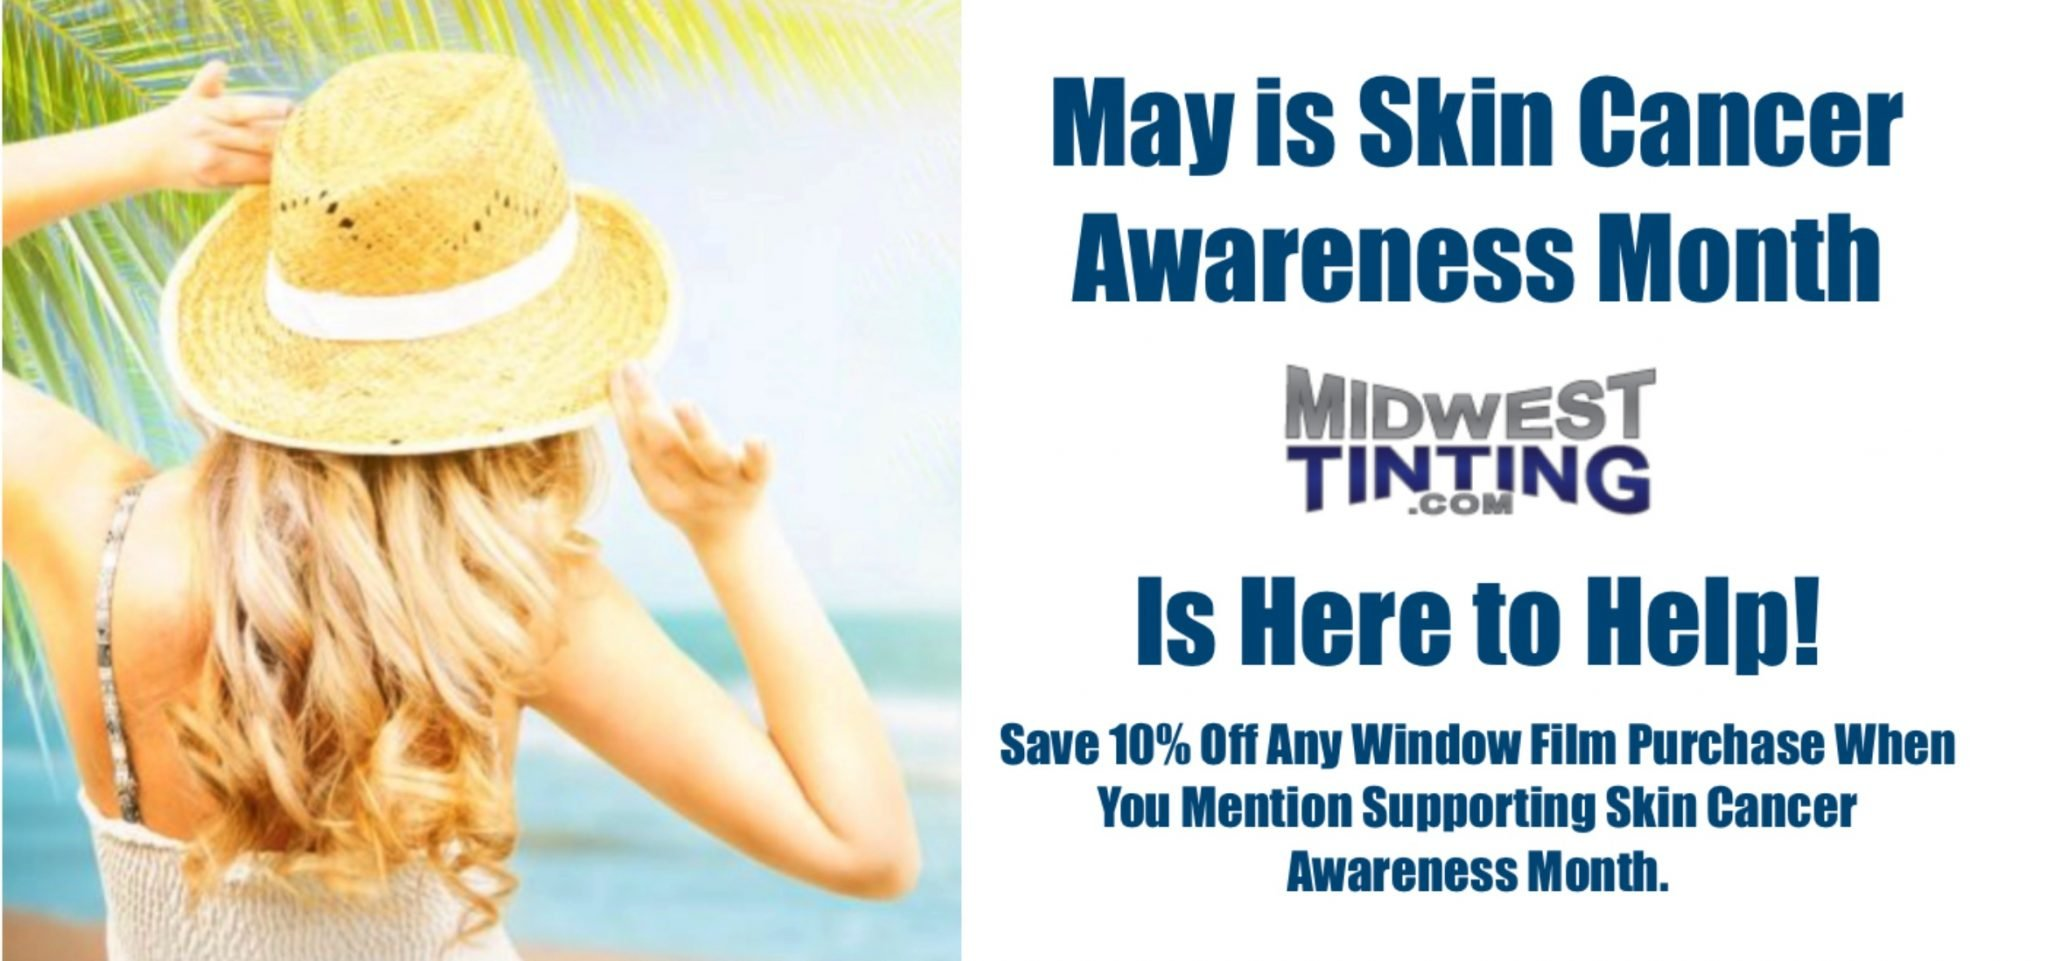 Love Your Skin! - Skin Cancer Awareness and How Window Film Helps